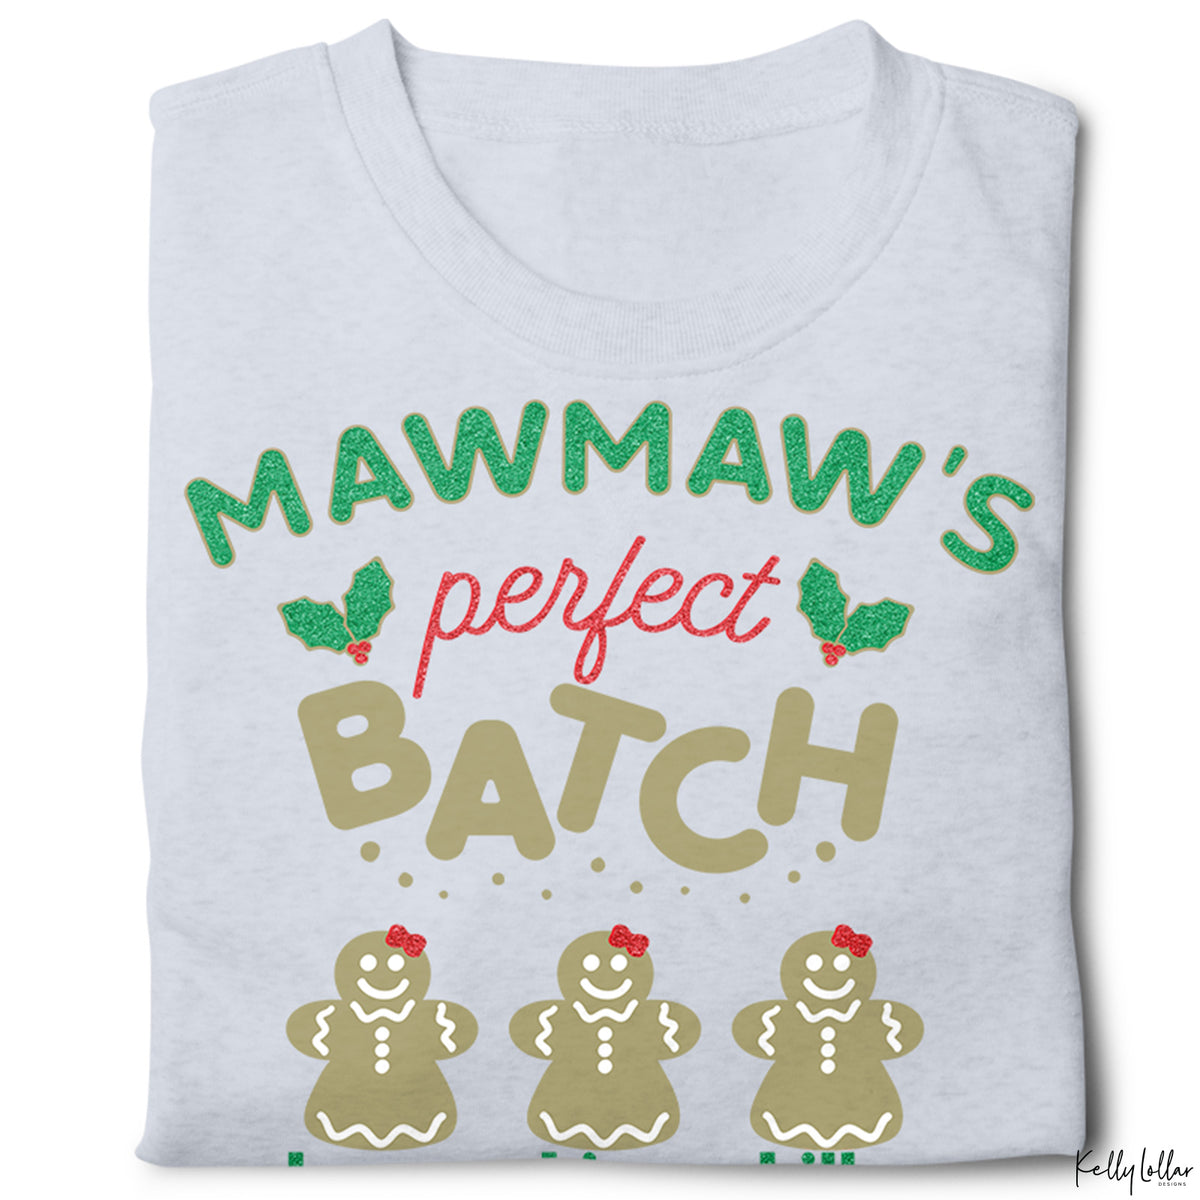 Mawmaw's Perfect Batch | Christmas Shirt Design for Mawmaw with Gingerbread Cookies for Children's Names | SVG DXF EPS PNG Cut Files